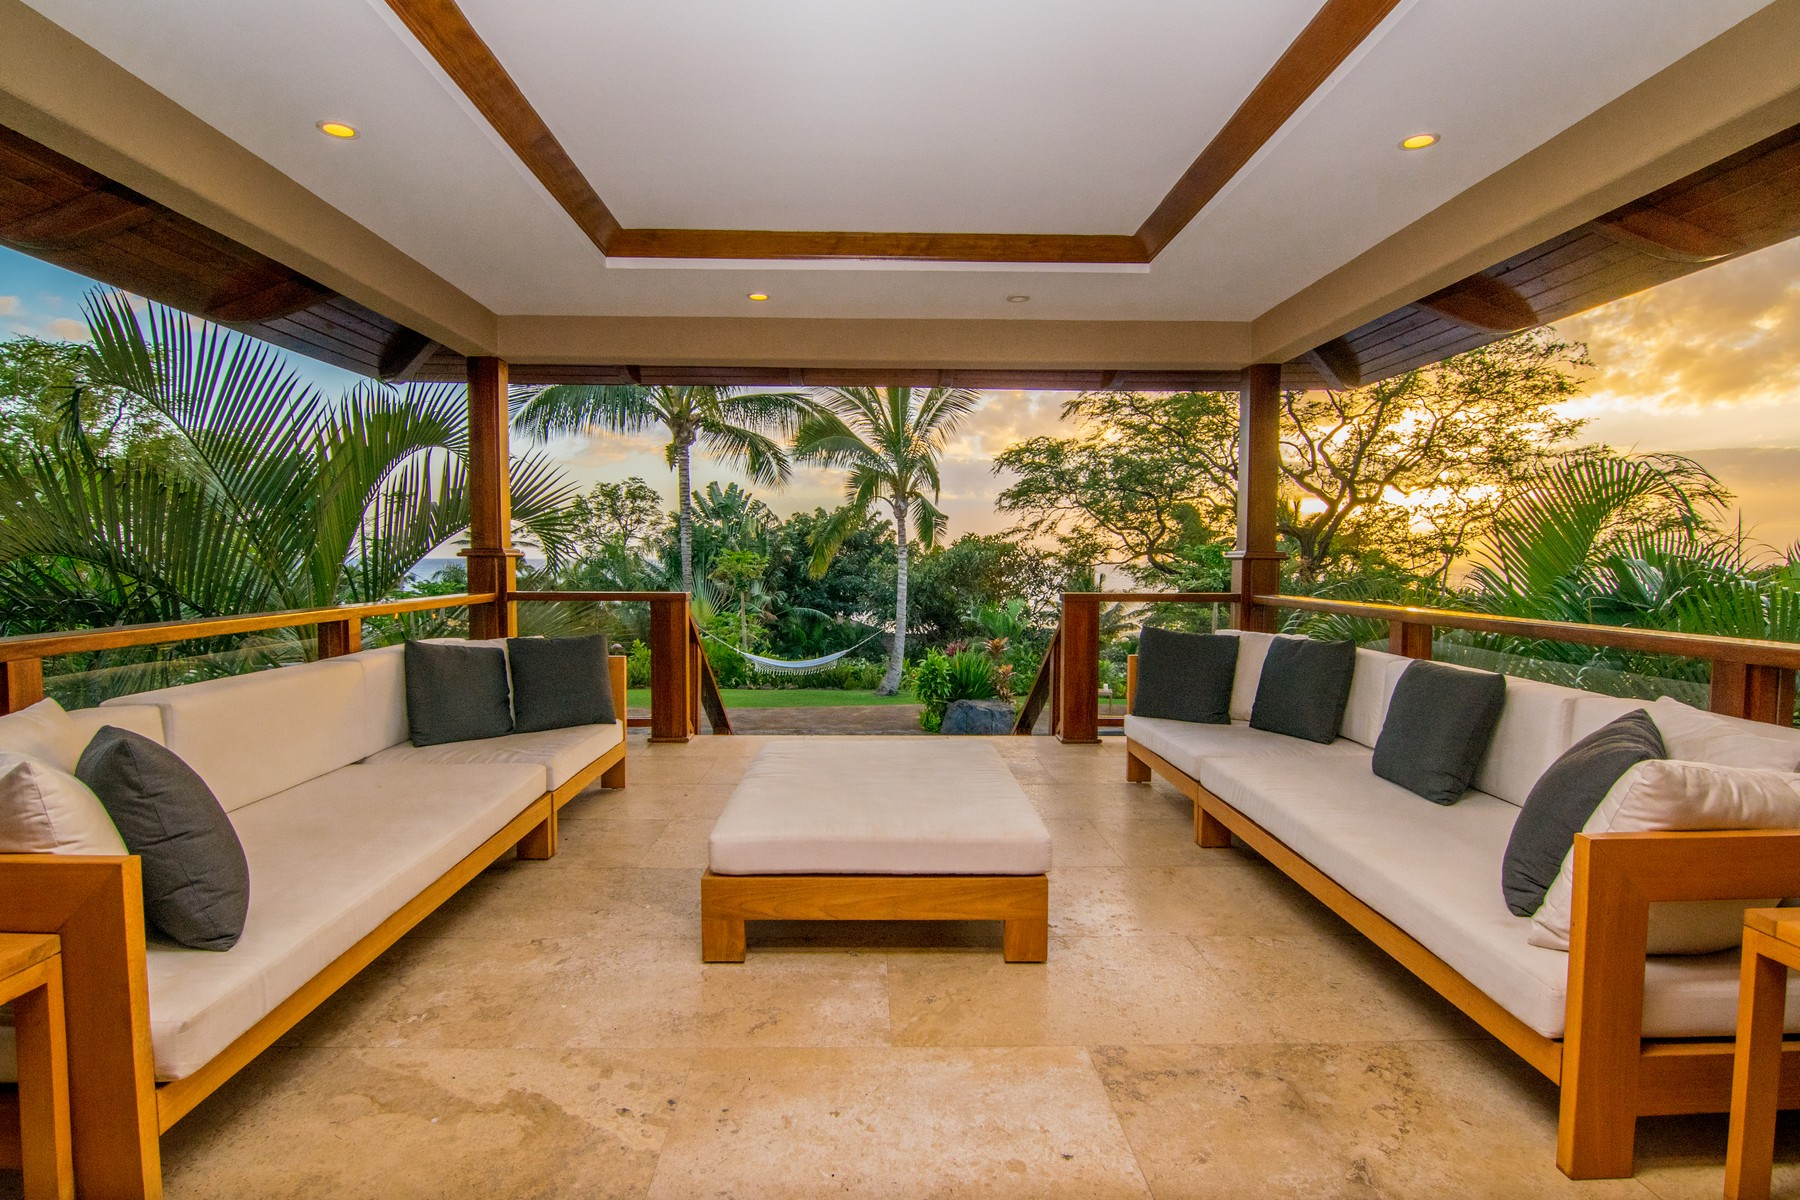 Moradia para Venda às Makena Luxury Home 7131 Makena Road Wailea, Havaí 96753 Estados Unidos